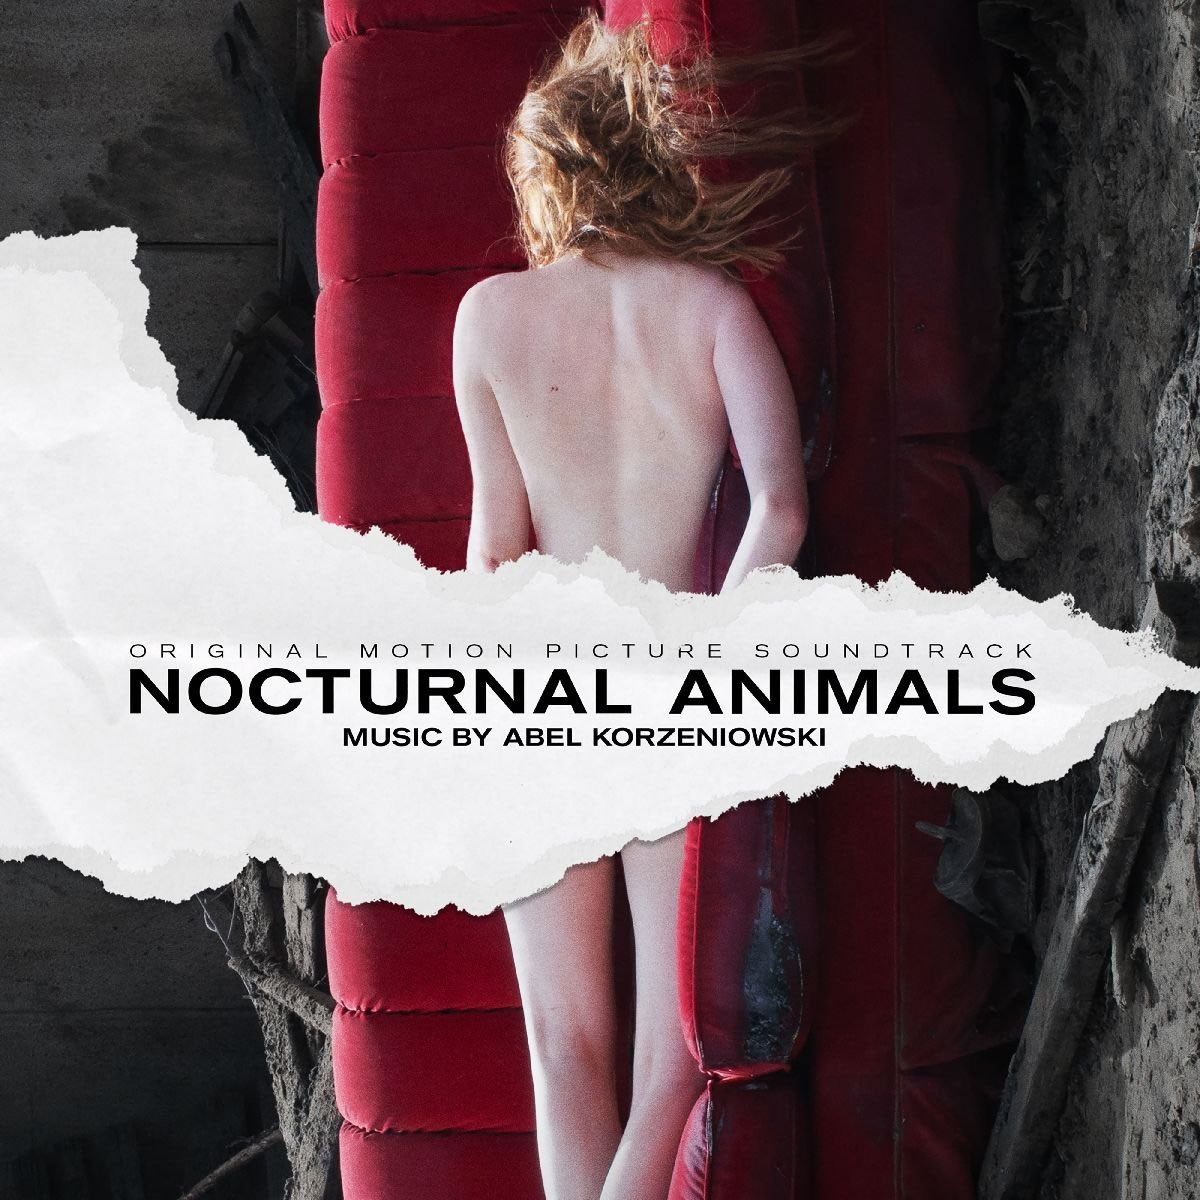 NOCTURNAL ANIMALS - THE ORIGINAL MOTION PICTURE SOUNDTRACK (AUDIO CD)